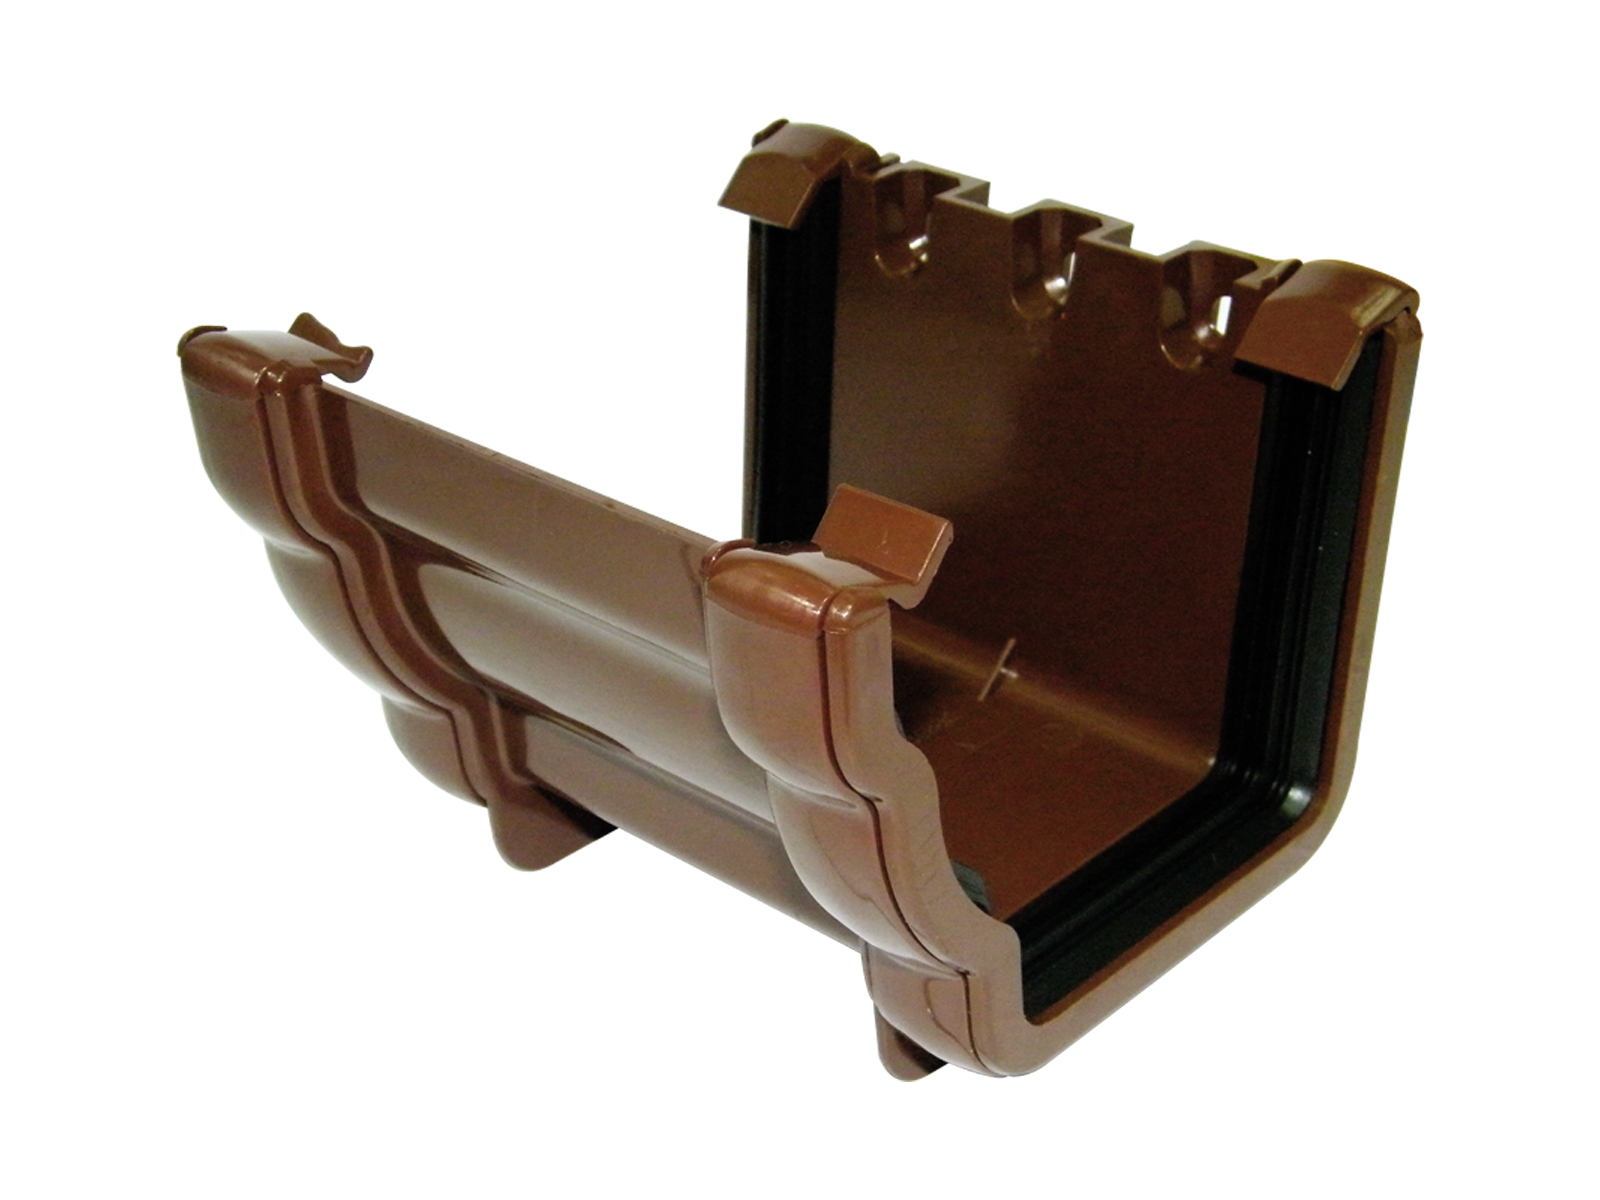 FLOPLAST NIAGARA - RUN1 UNION BRACKET - BROWN